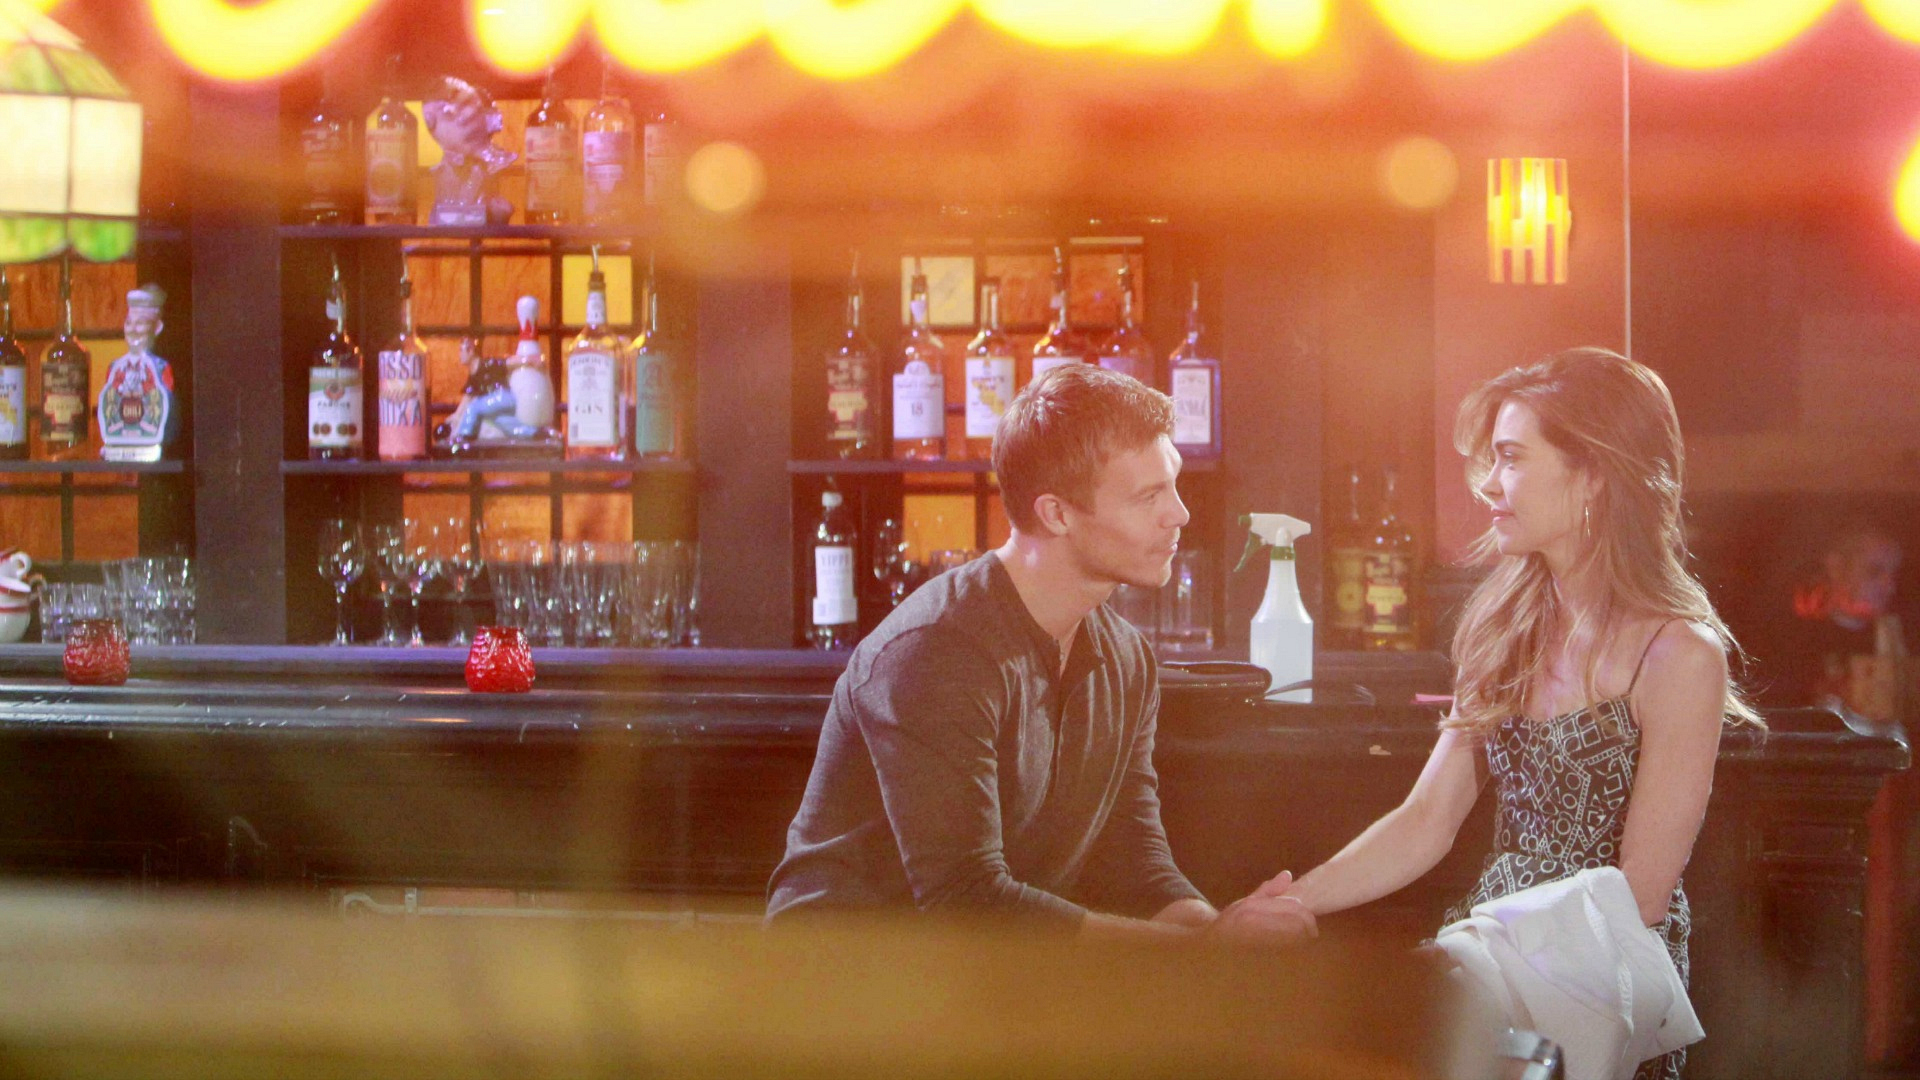 Victoria discovers a new side of Travis.